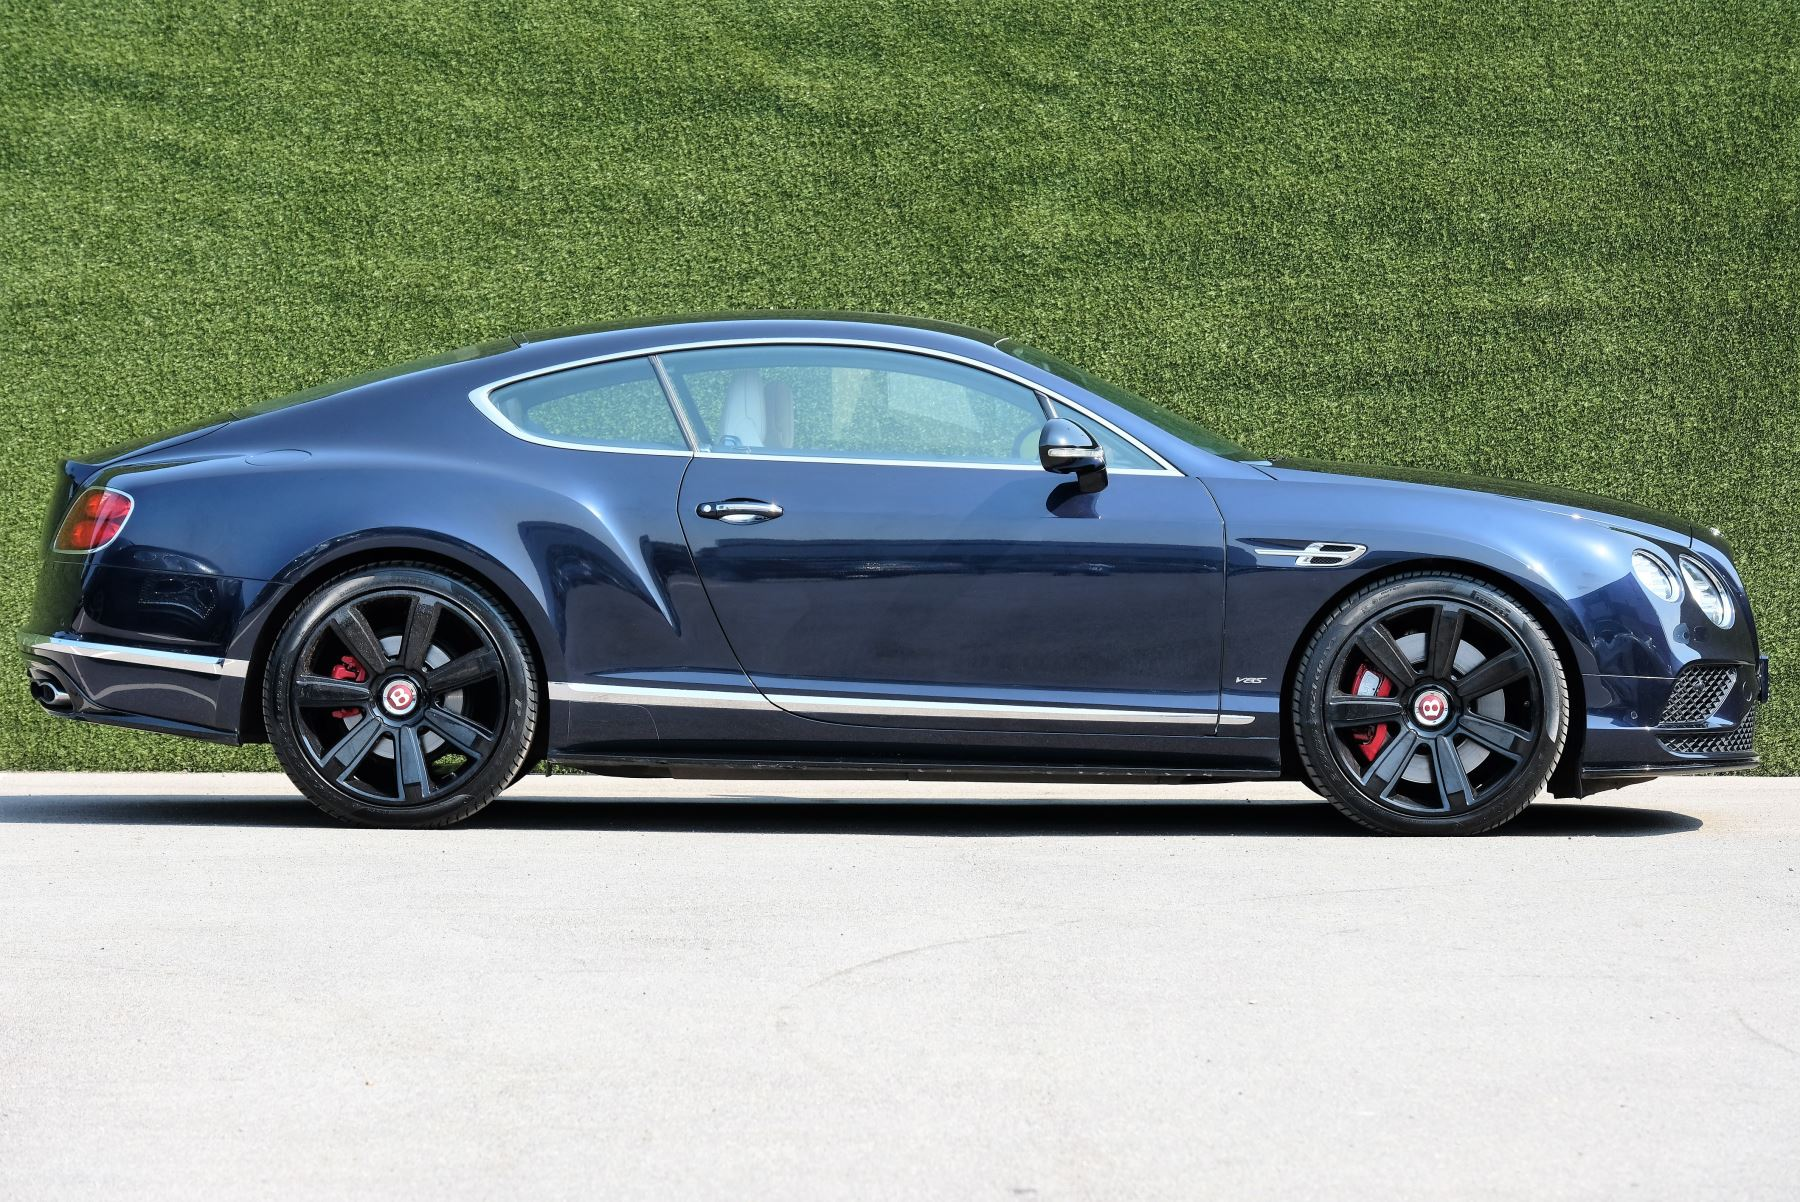 Bentley Continental GT V8 S Coupe 4.0 V8 S 2dr Auto Mulliner Driving Specification image 5